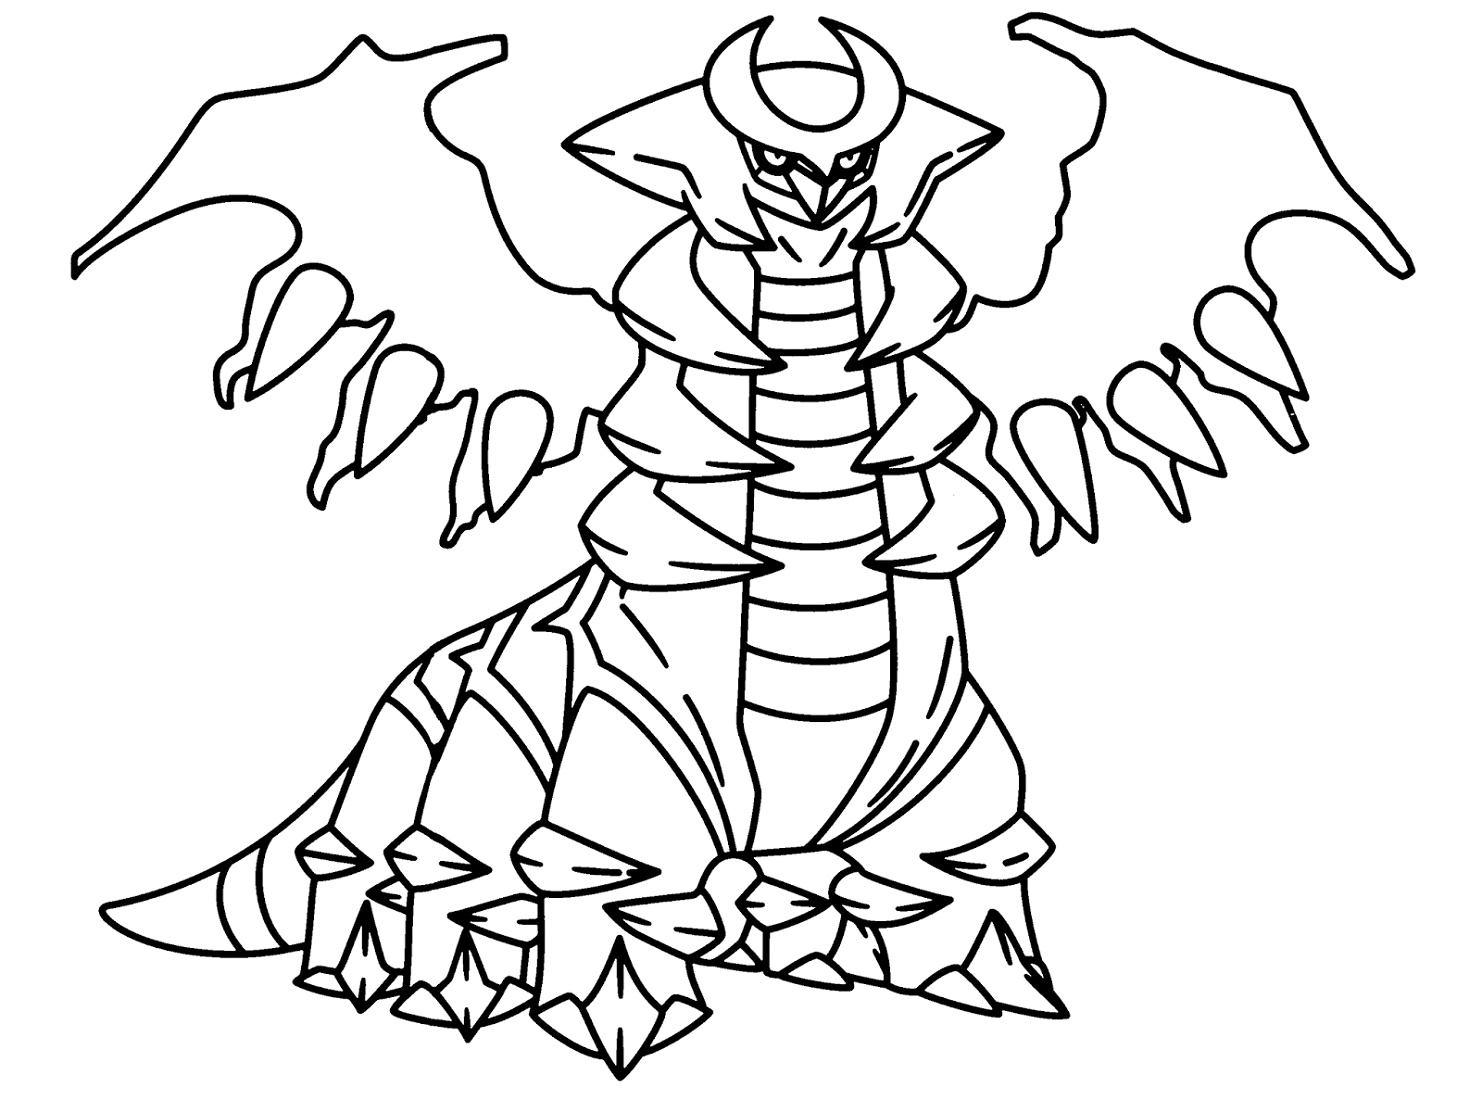 Legendary Pokemon Coloring Pages Gratina